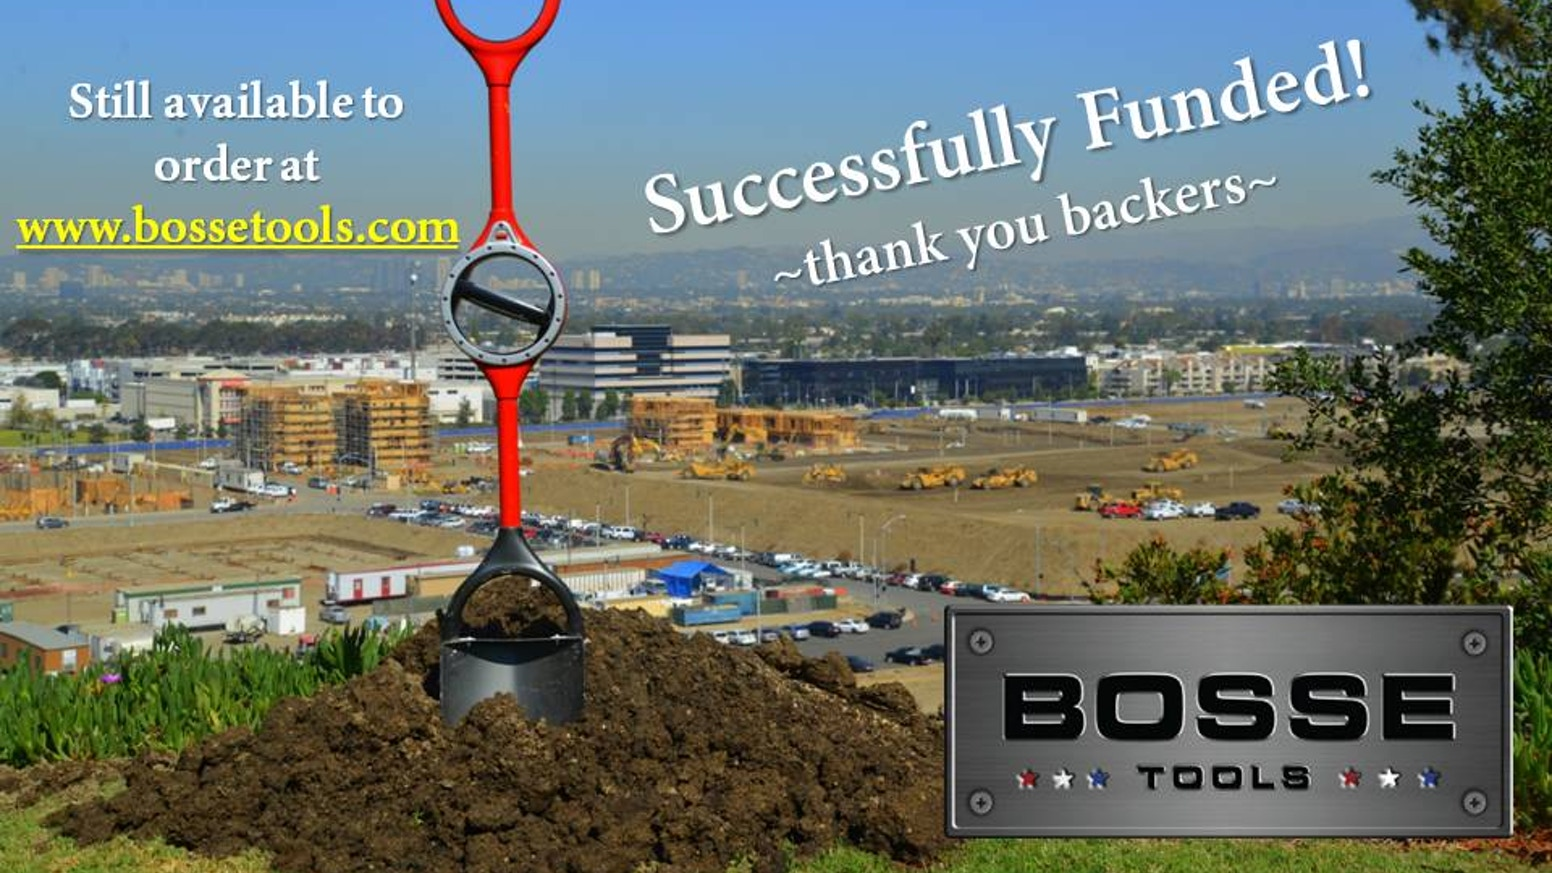 Industrial, age-old design meets ergonomic innovation.  Groundbreaking technology from Bosse Tools has reinvented the shovel.